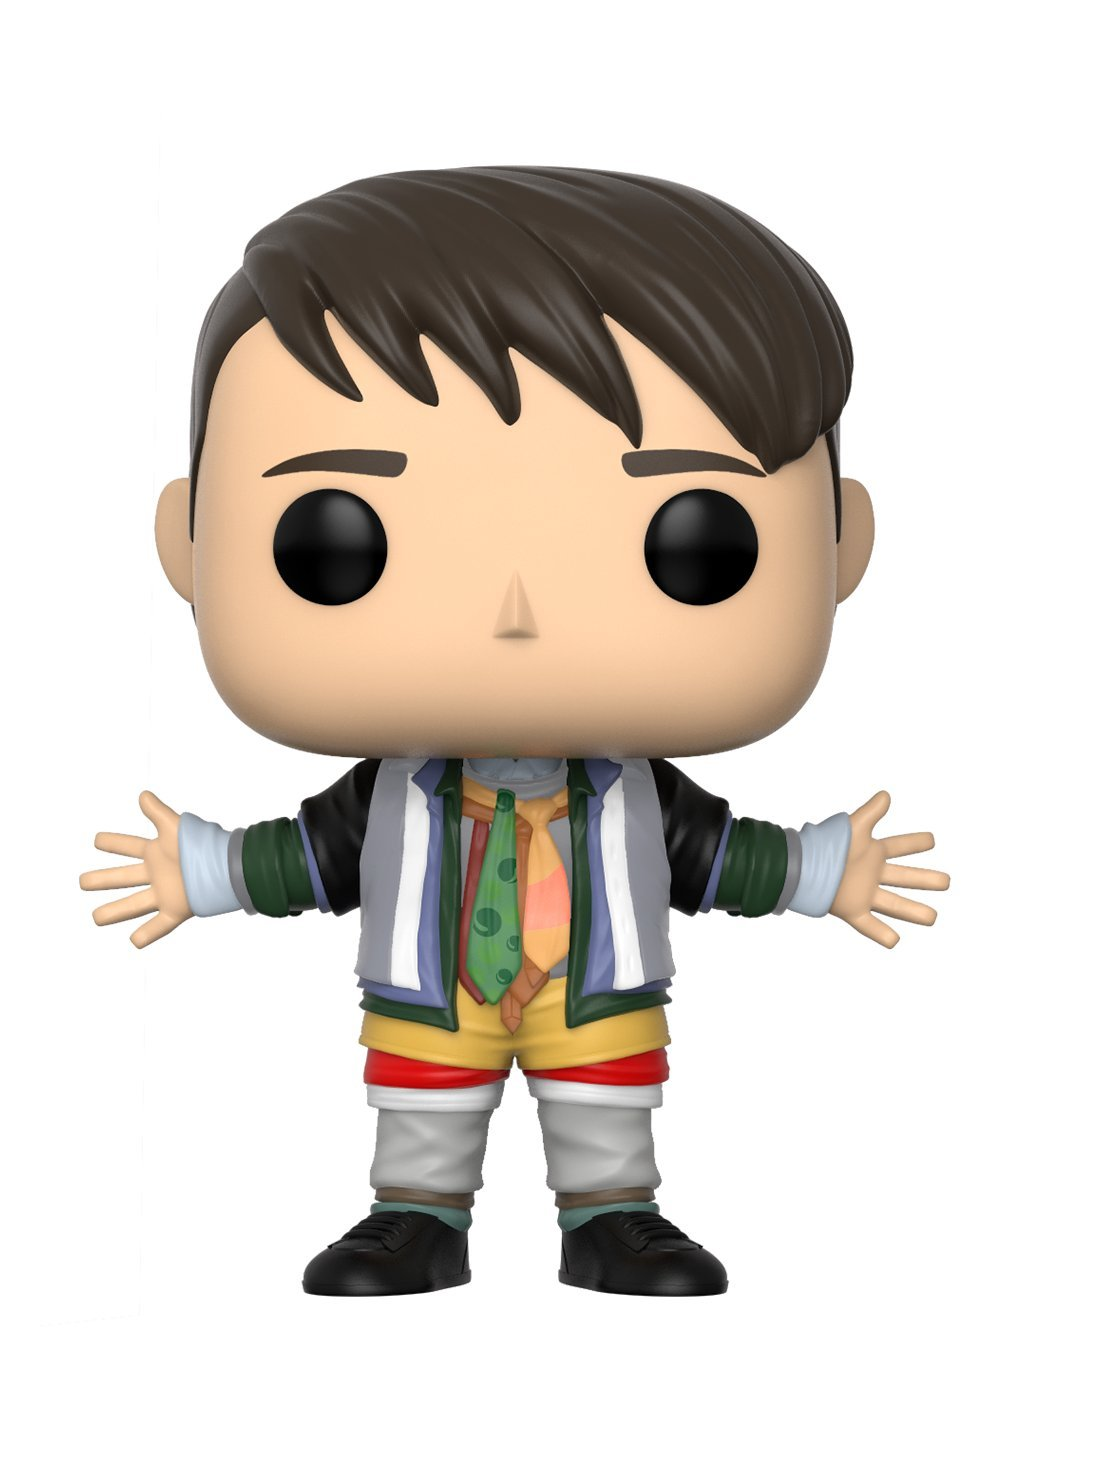 Funko Pop Television: Friends - Joey in Chandler's Clothes Collectible Figure, Multicolor 32745